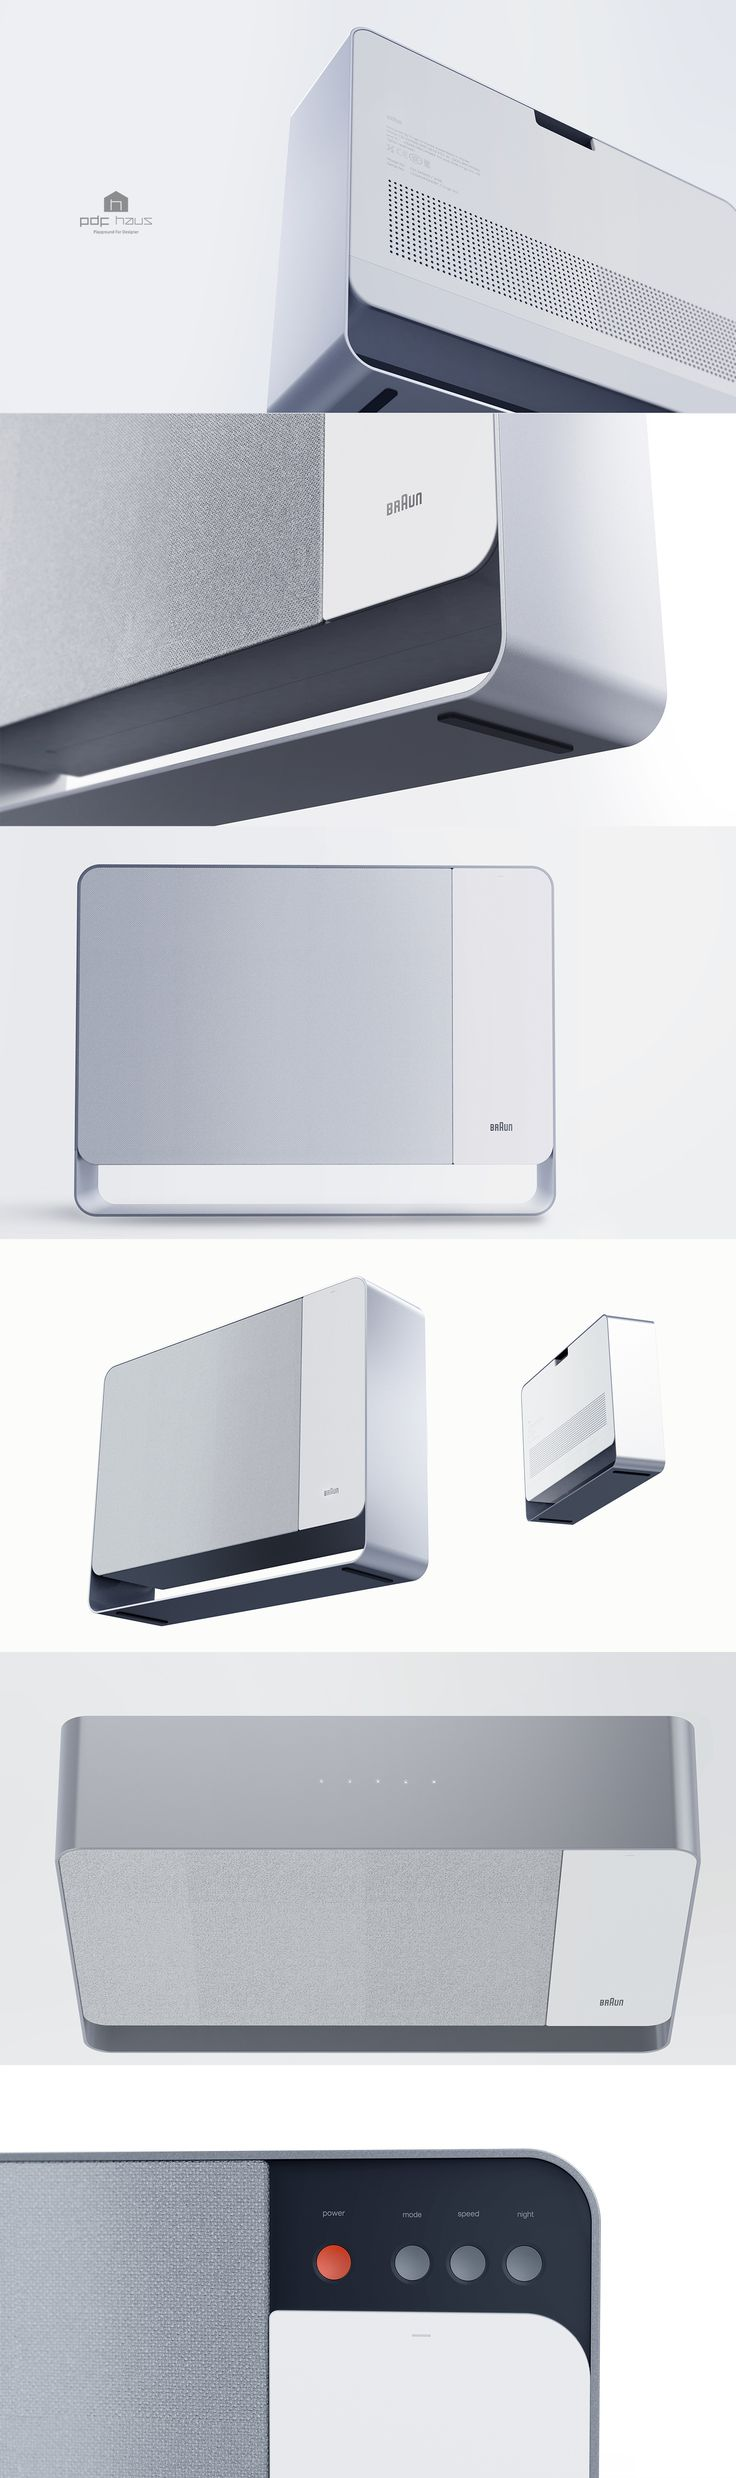 PDF HAUS_ Republic of Korea Design Academy / Product design / Industrial design / 工业设计 / 产品设计/ 空气净化器 / 산업디자인 /air purifier/ 공기청정기/ 브라운/braun